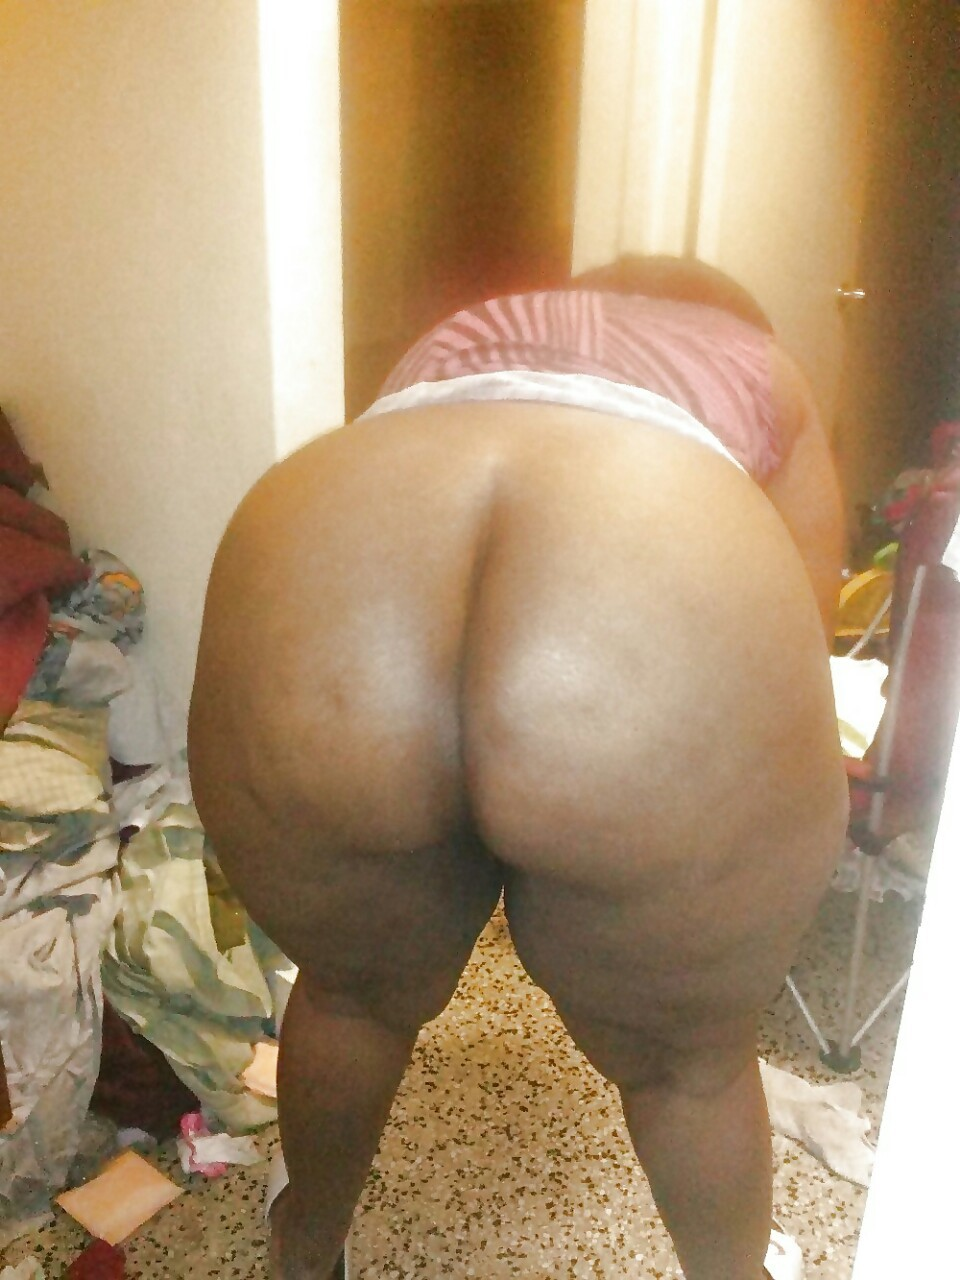 Big booty white booty spring break booty shake  african ladies photos watch ebony fuck